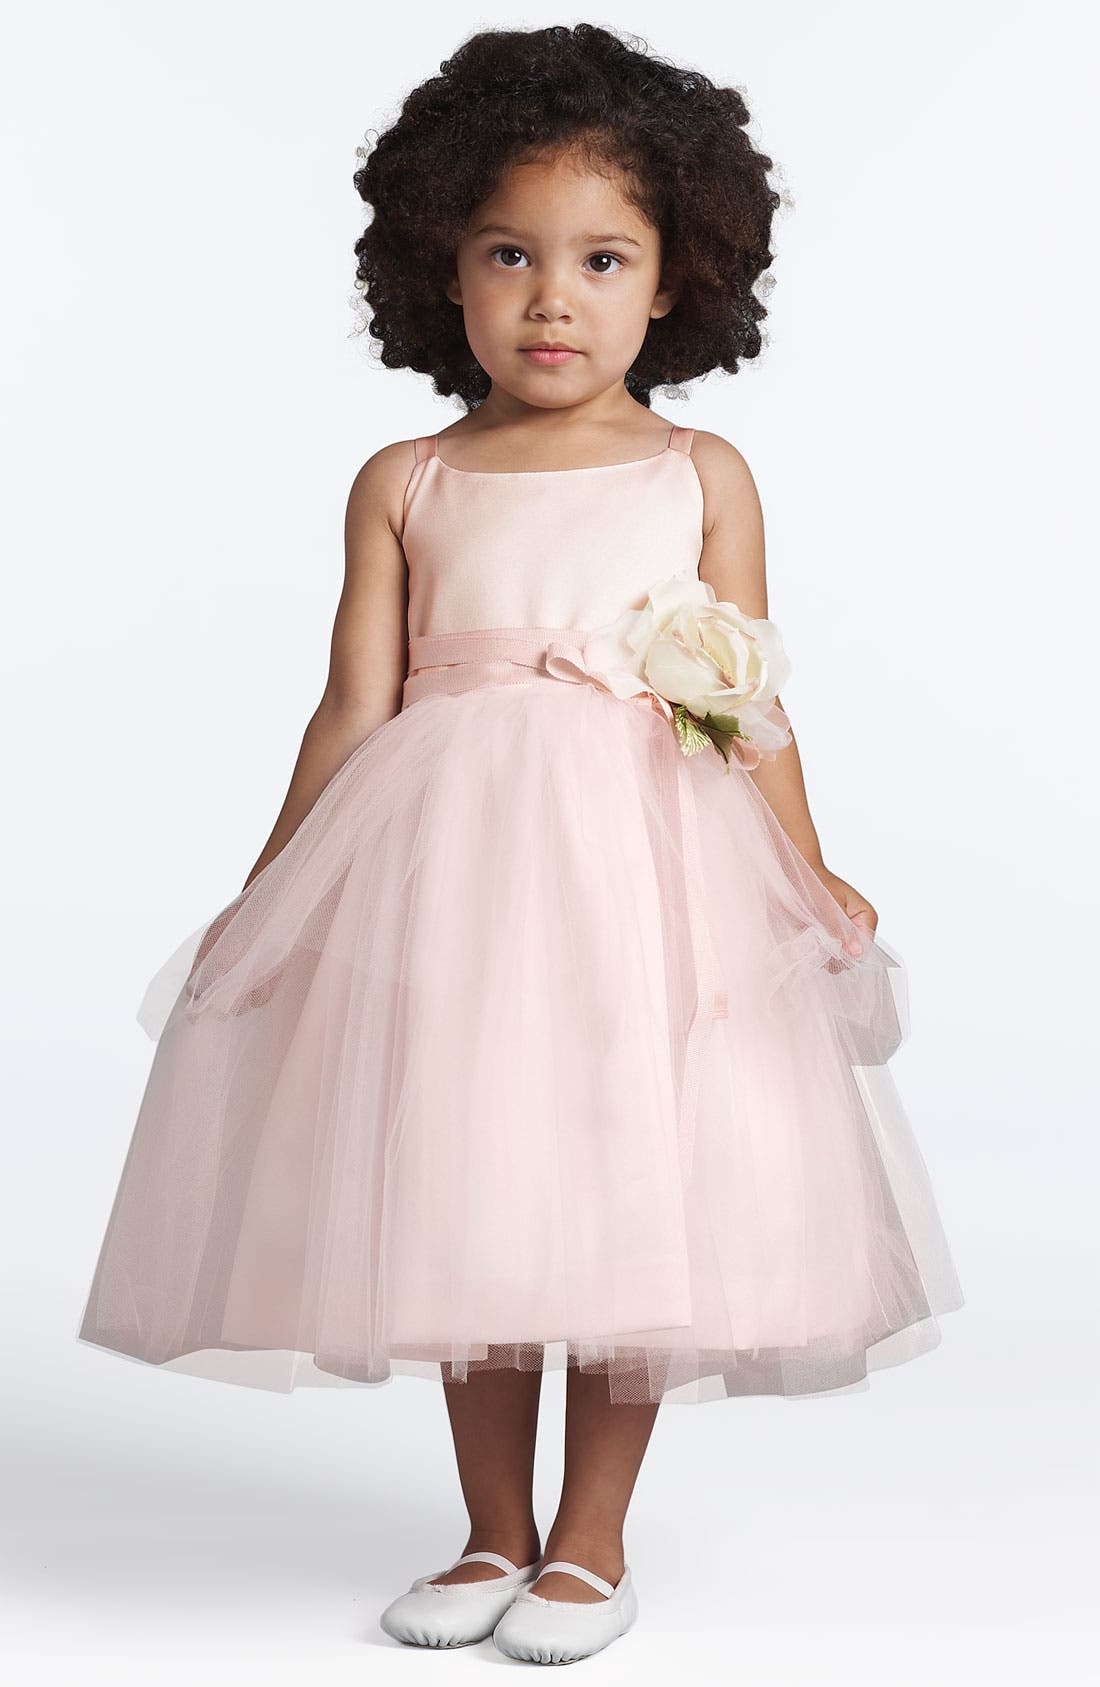 Alternate Image 1 Selected - Us Angels Tulle Ballerina Dress (Toddler Girls, Little Girls & Big Girls)